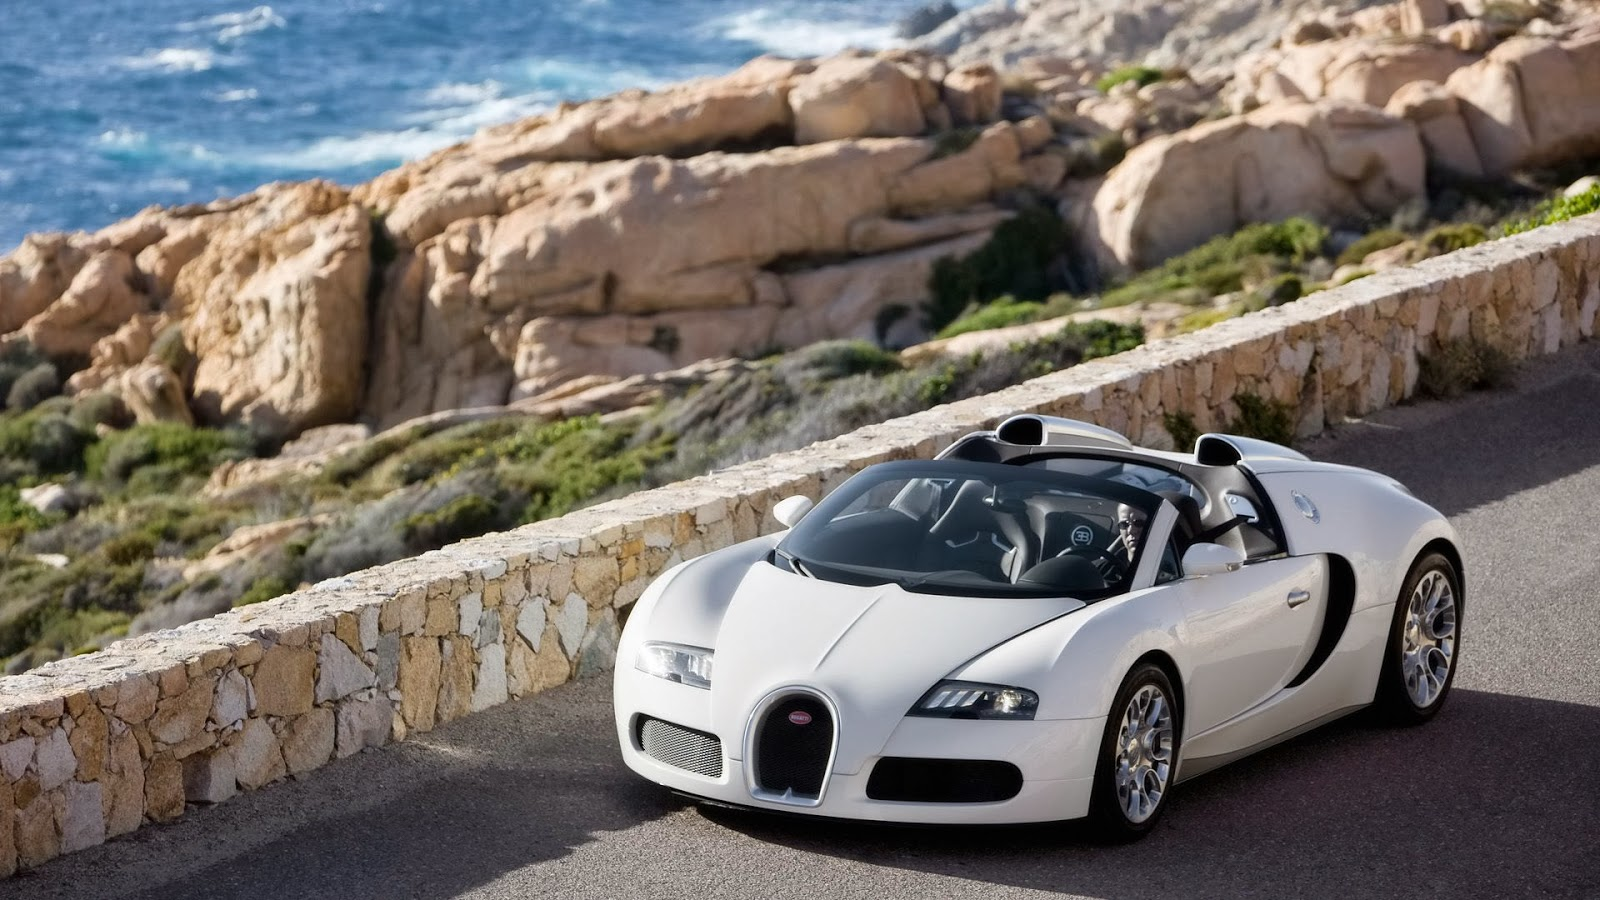 Wallpaper Bugatti HD 1080p